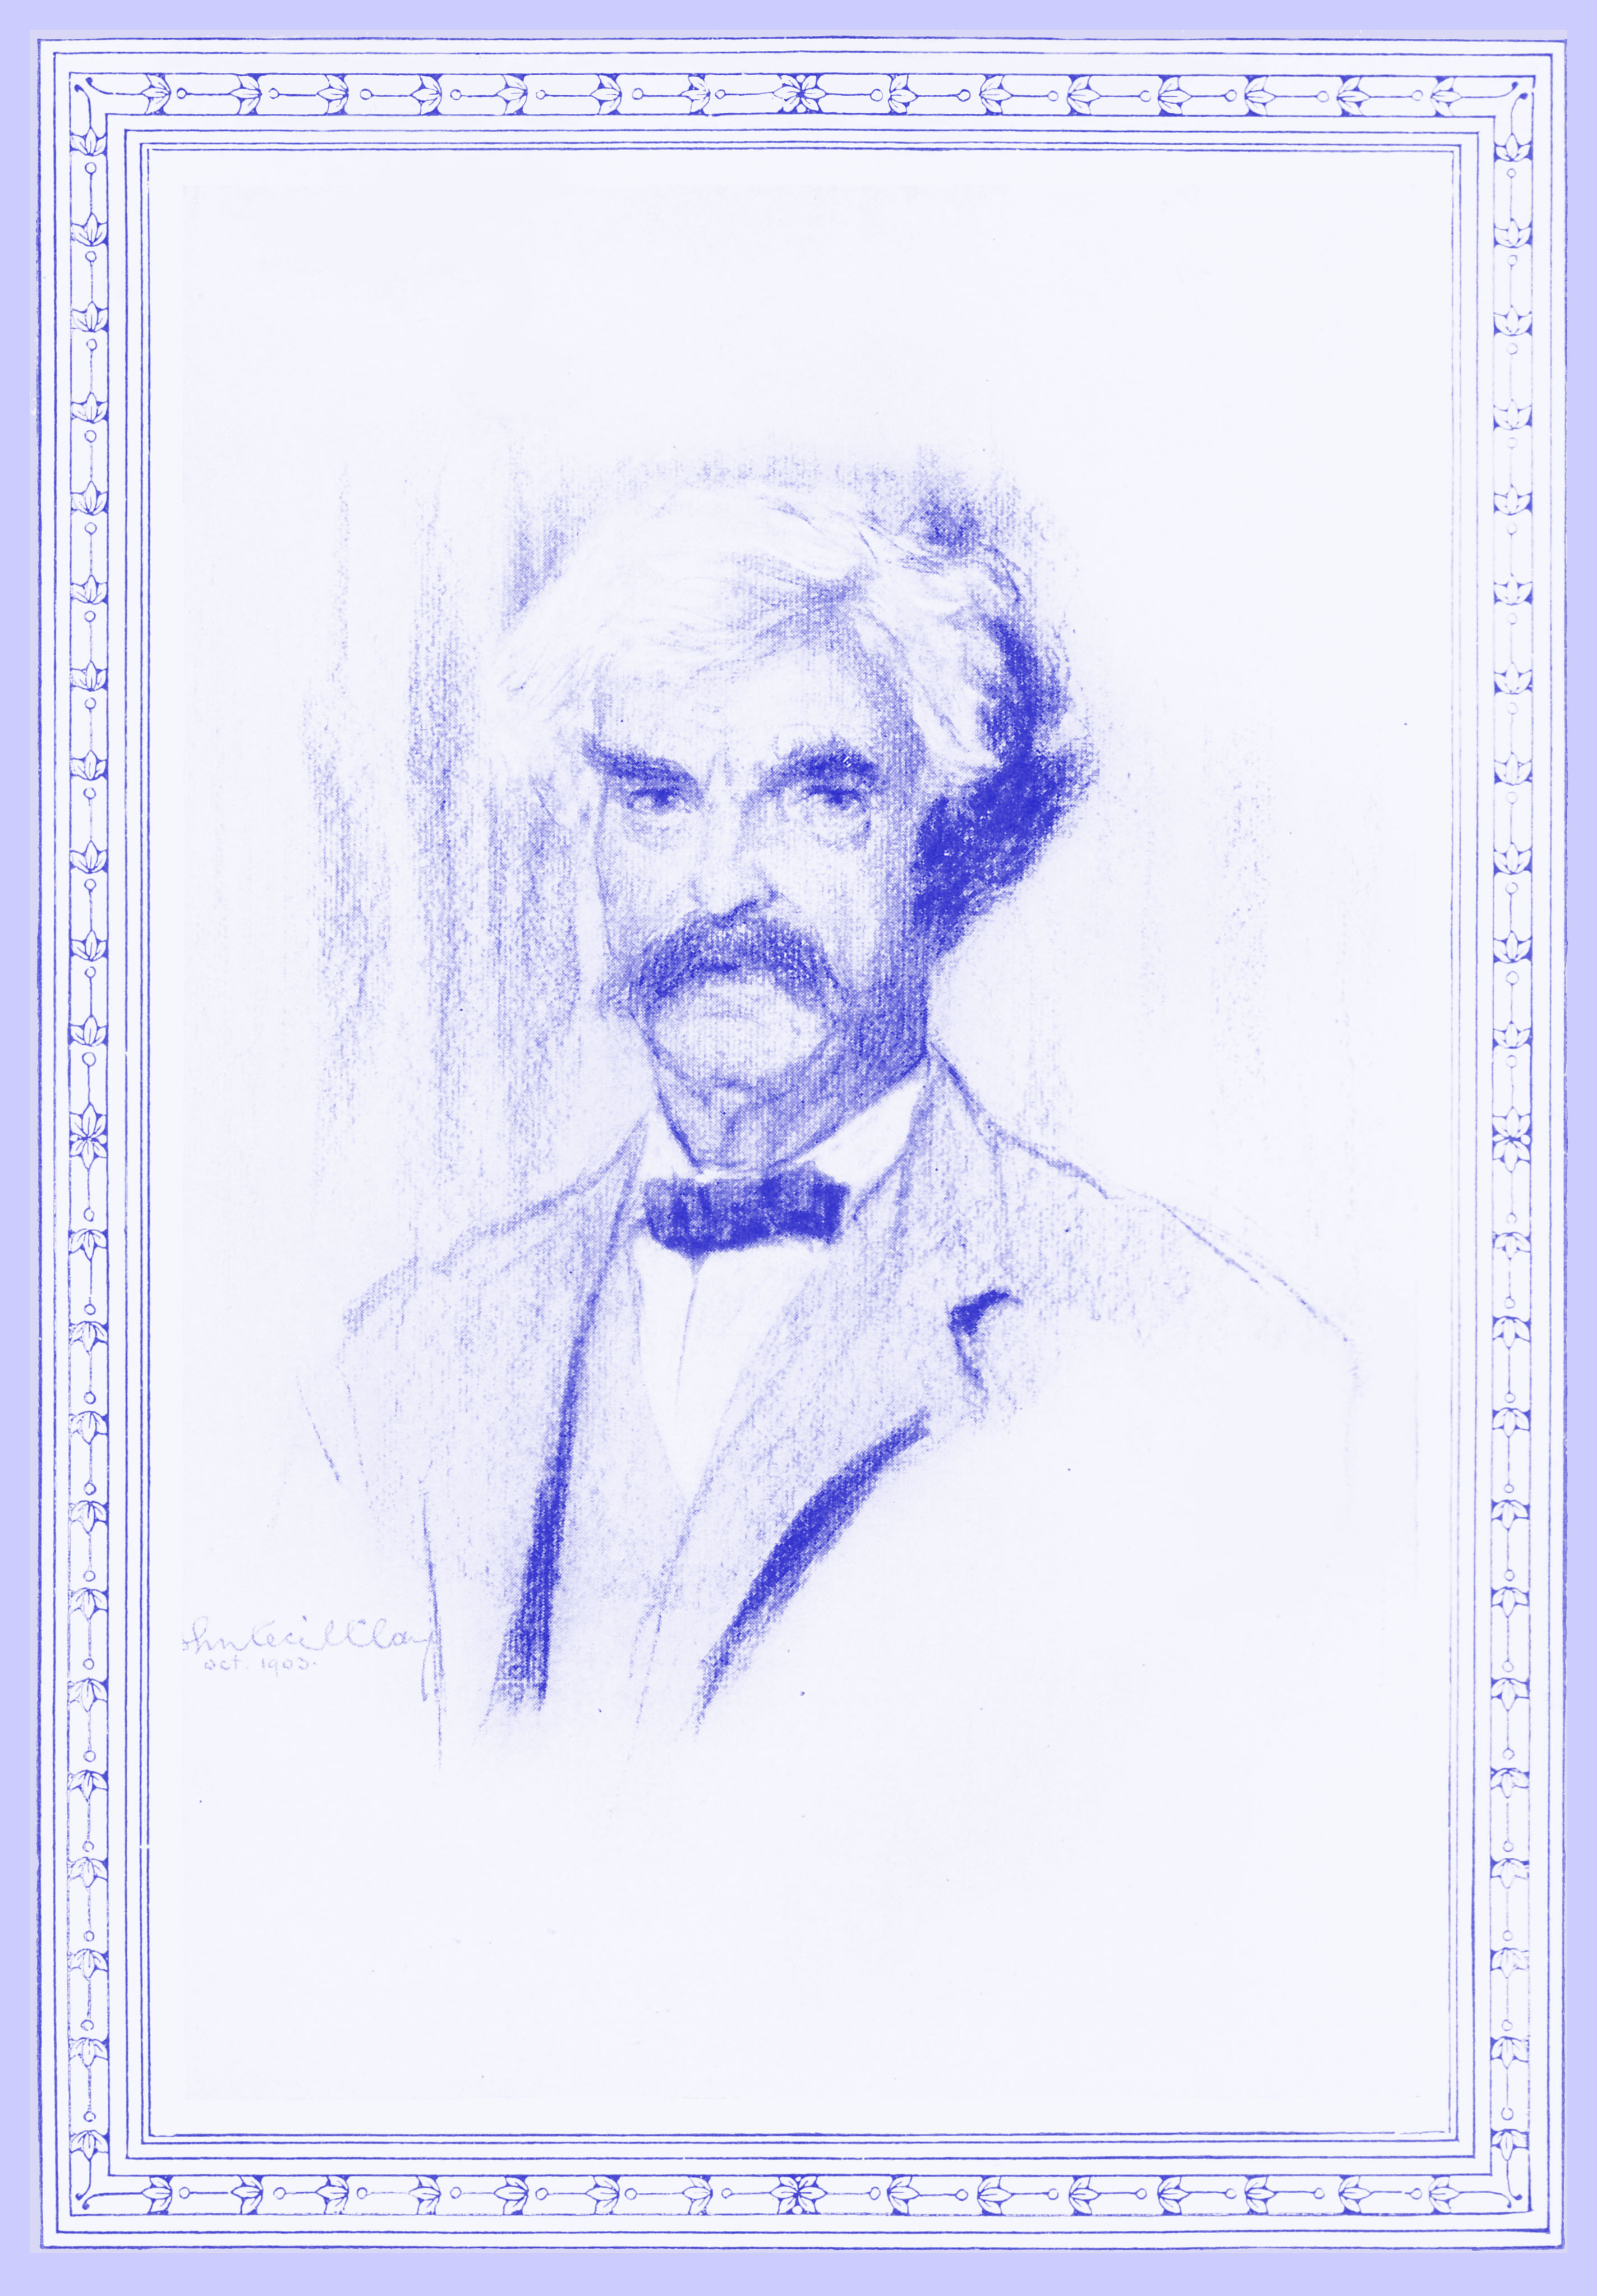 Black and white crayon sketch of Mark Twain by John Cecil Clay, October 1903, with white hair and a dark moustache, wearing a light suit with a dark softly folded bowtie.